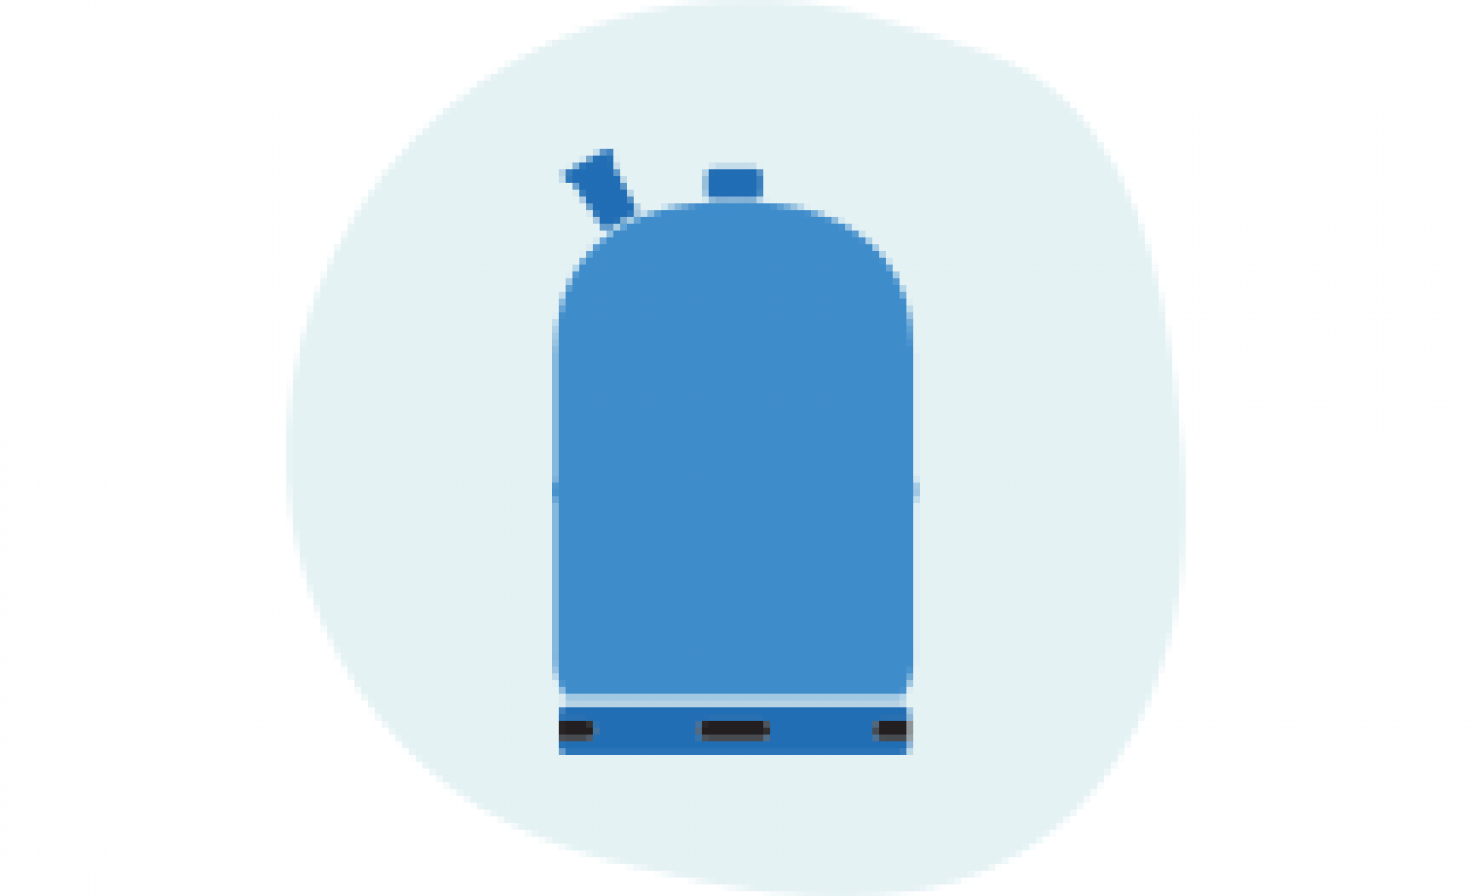 Diagram of an oxygen tank